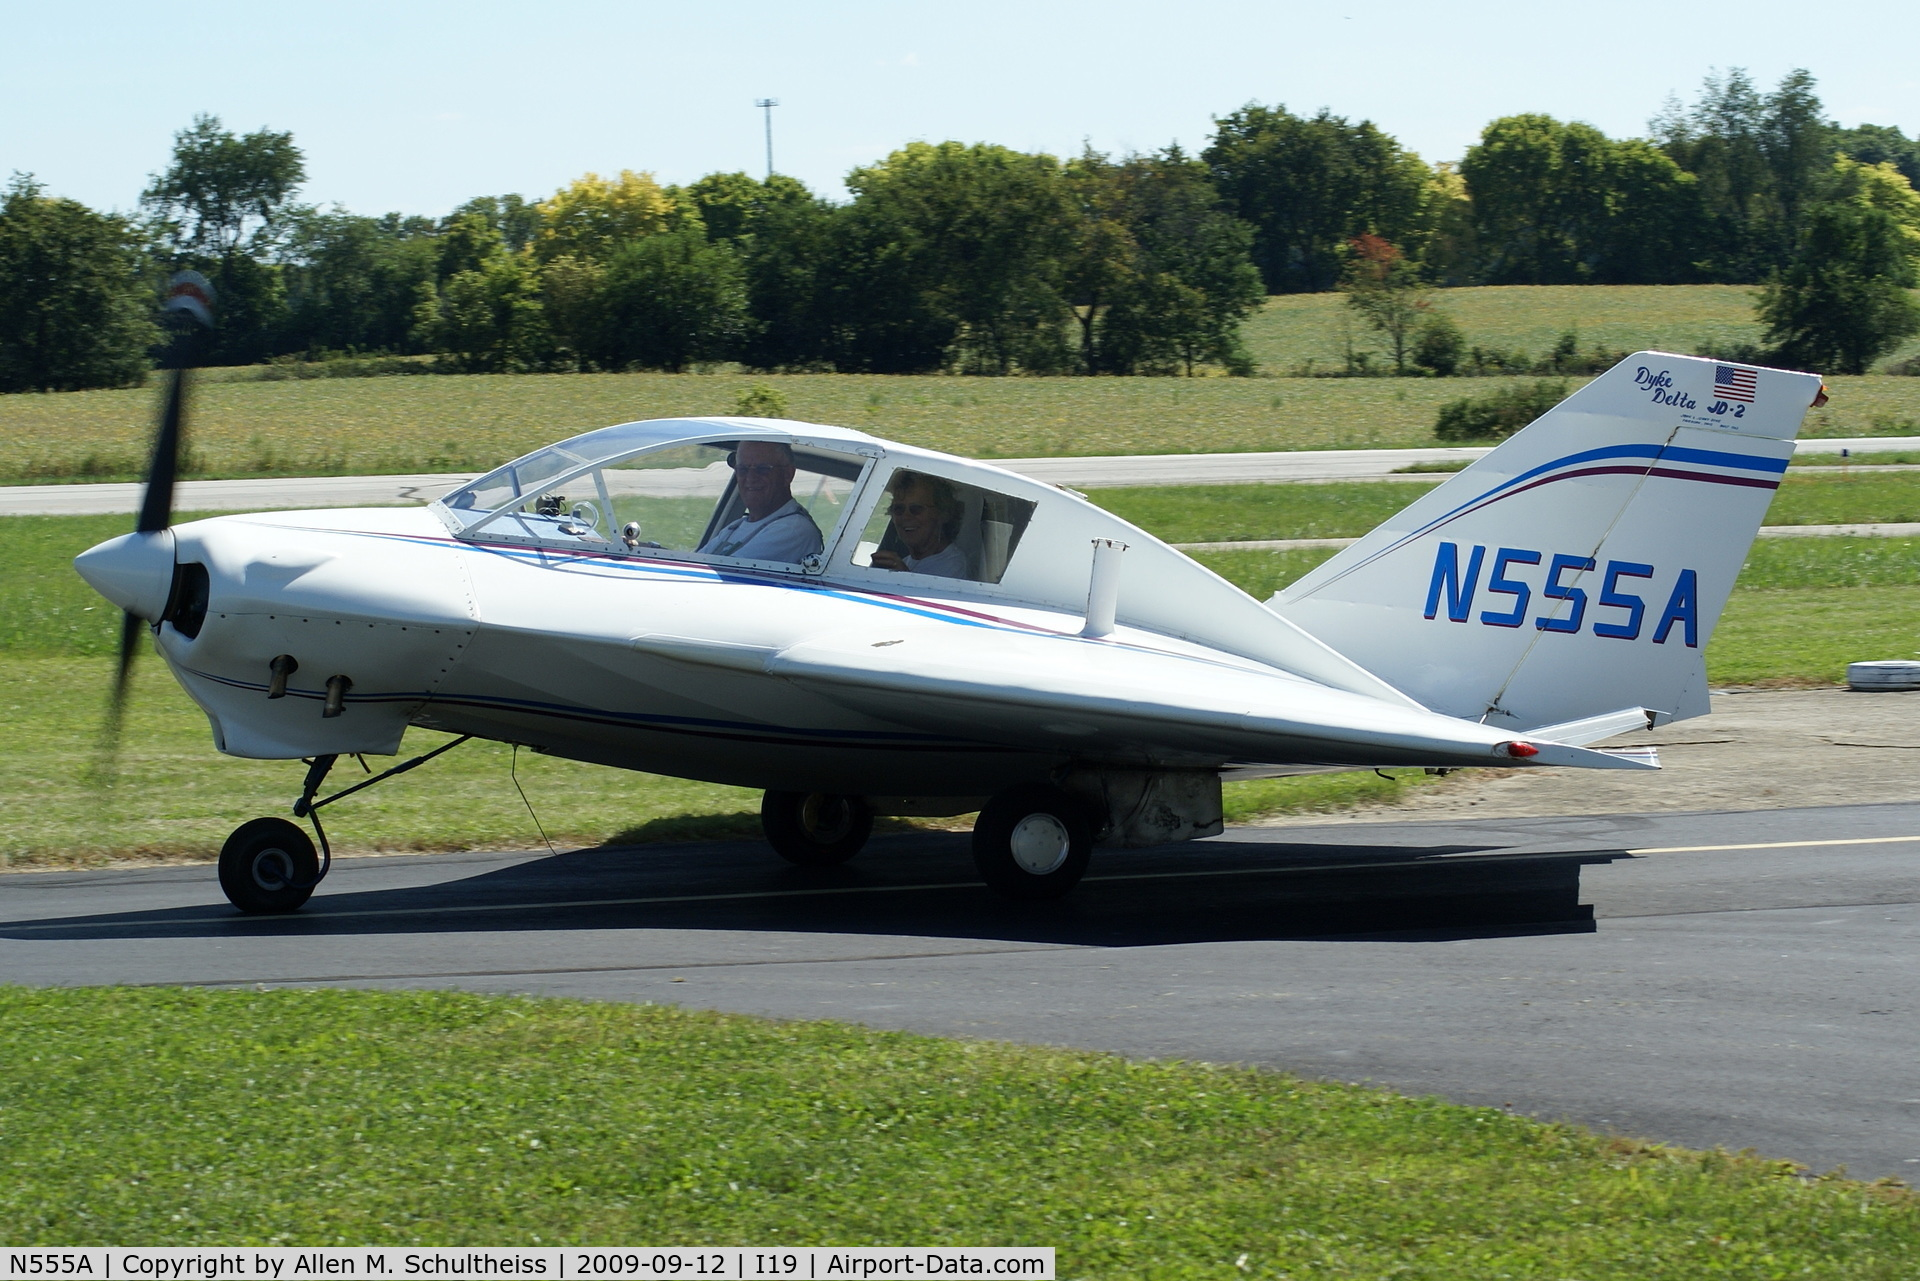 Dyke Delta Aircraft http://www.airport-data.com/aircraft/photo/000378815.html